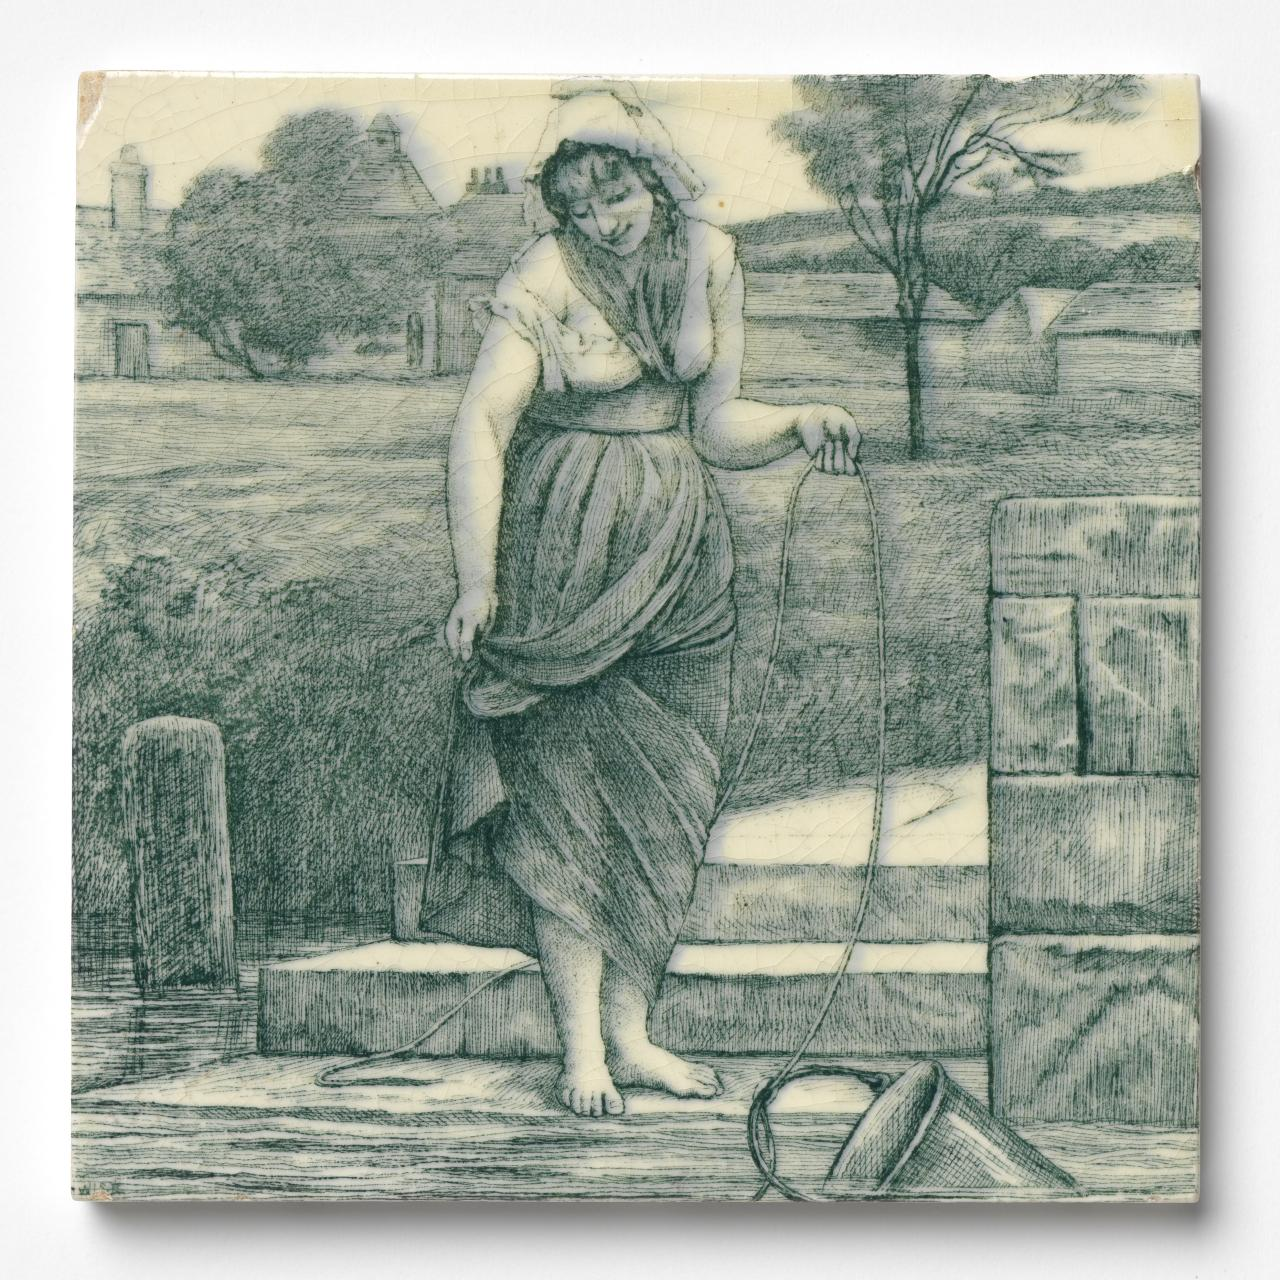 (Woman at the well), tile